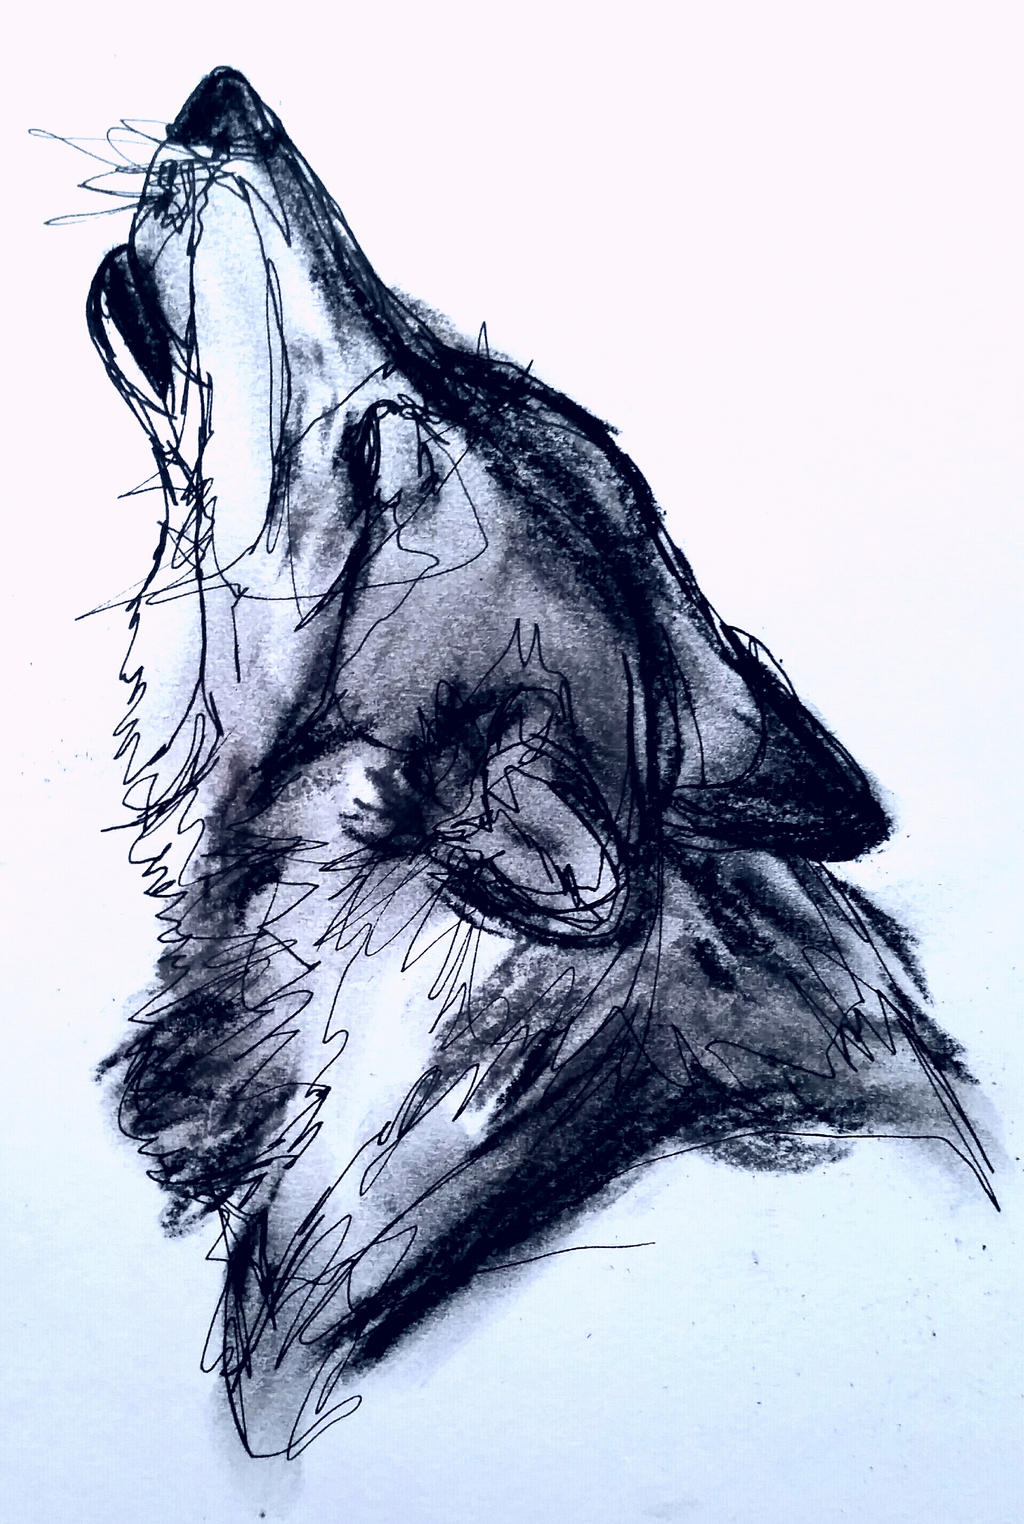 howling wolf head 5 by whydoyoucaresomuch on DeviantArt